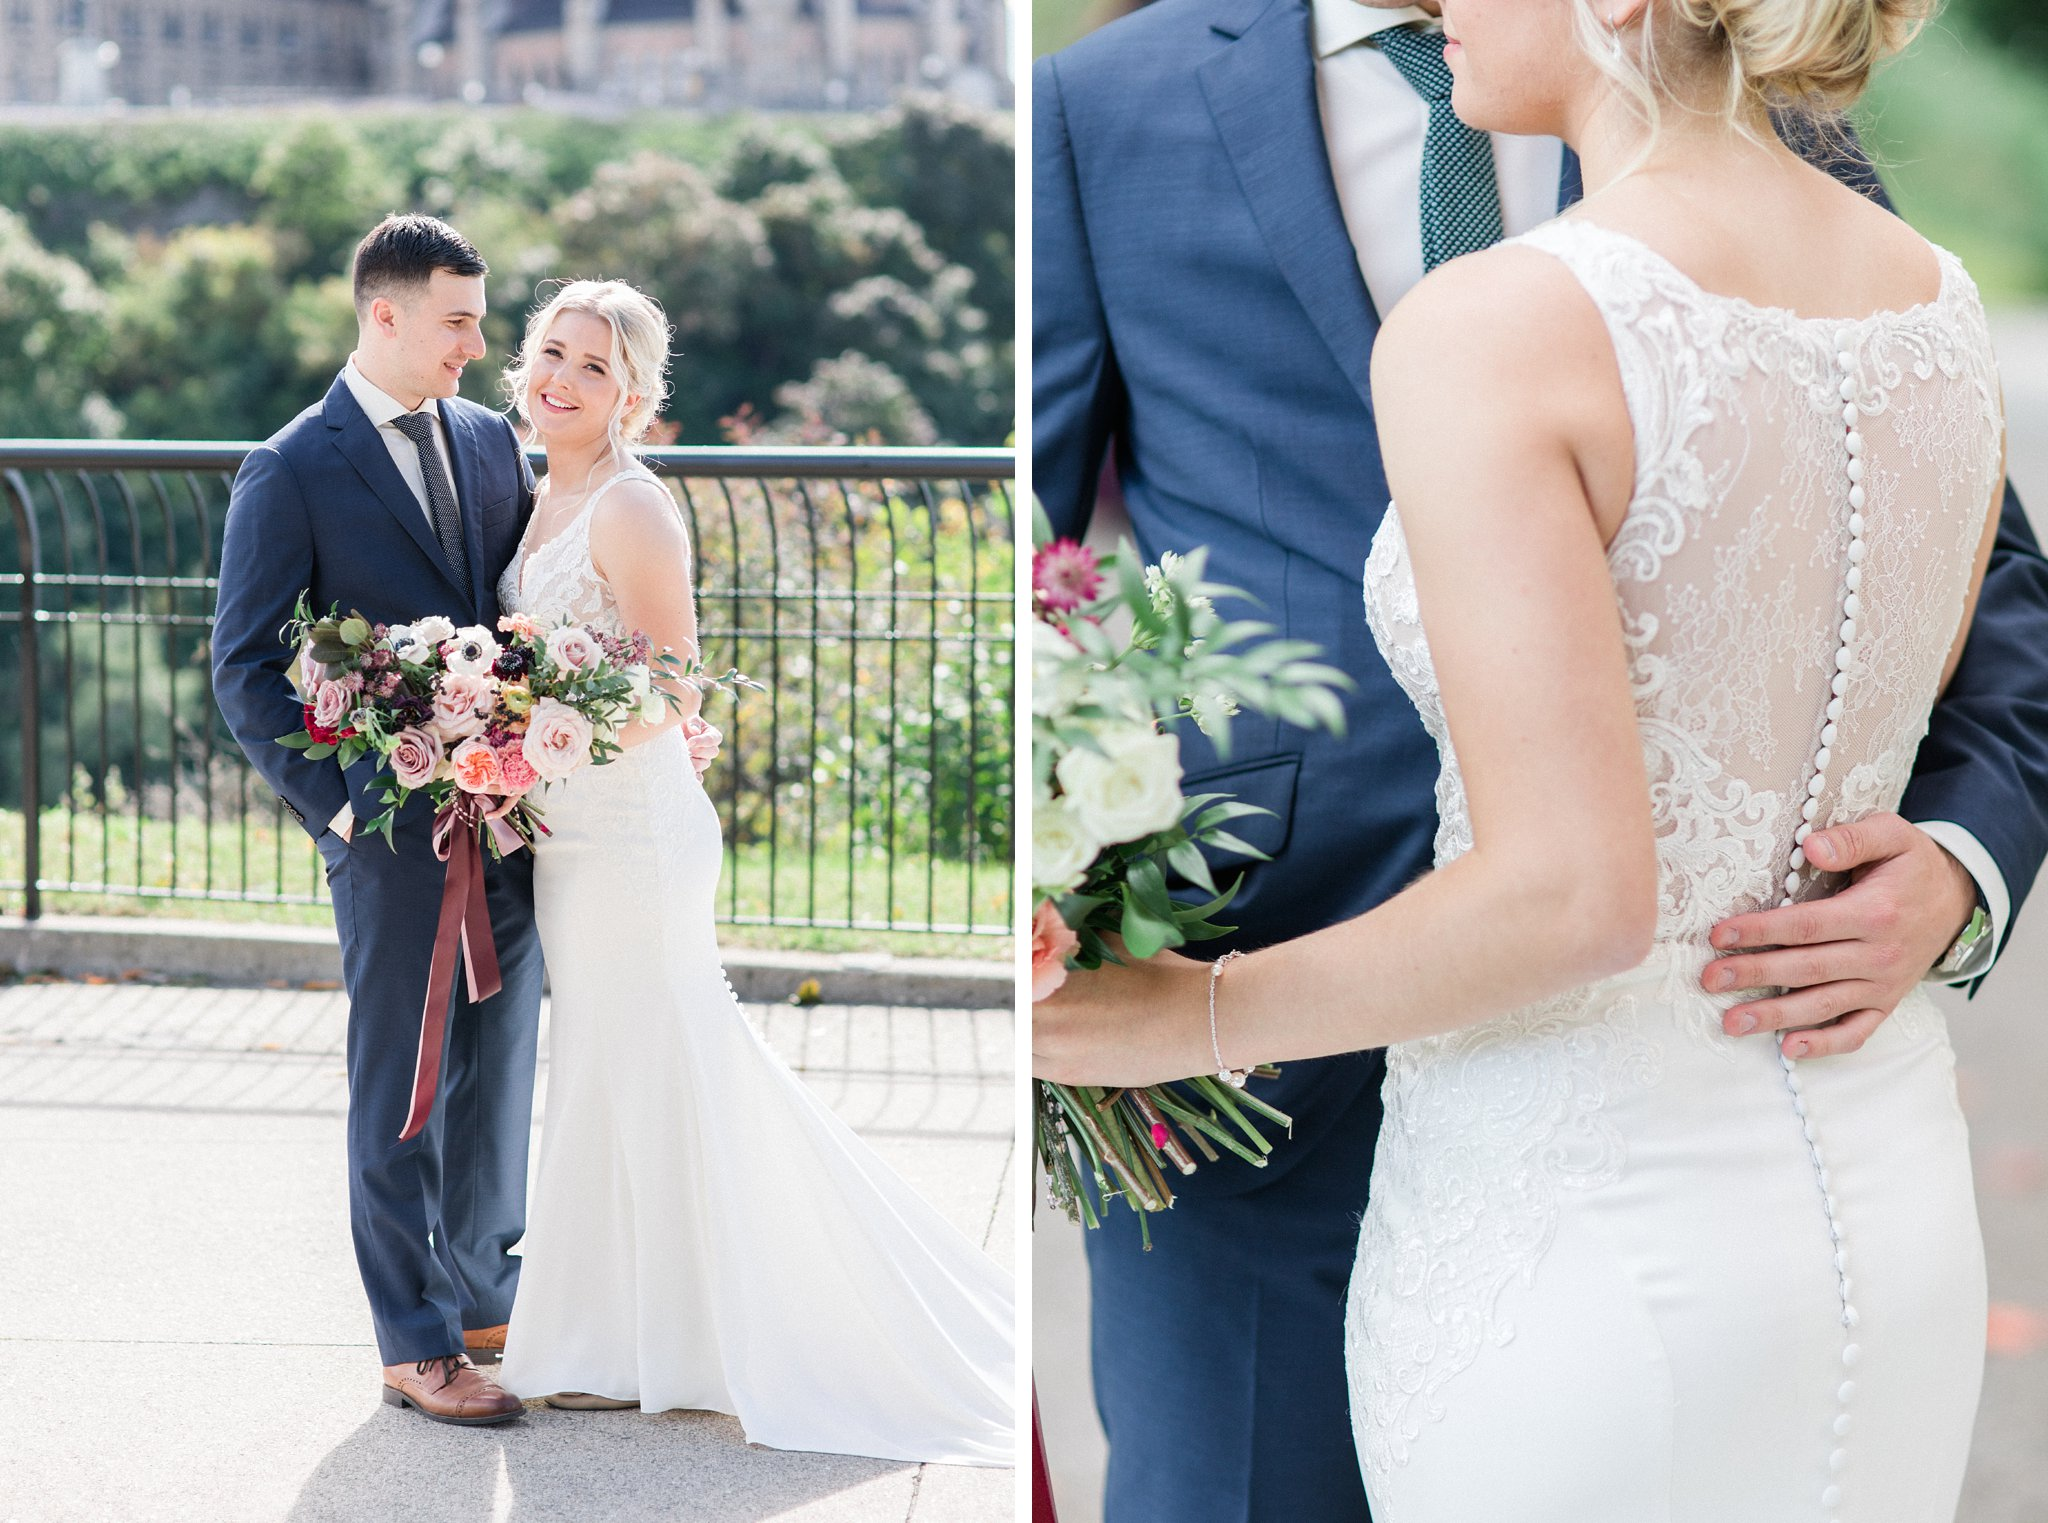 Illusion back wedding dress with satin buttons With Love Bridal Ottawa restaurant wedding at Sidedoor Restaurant